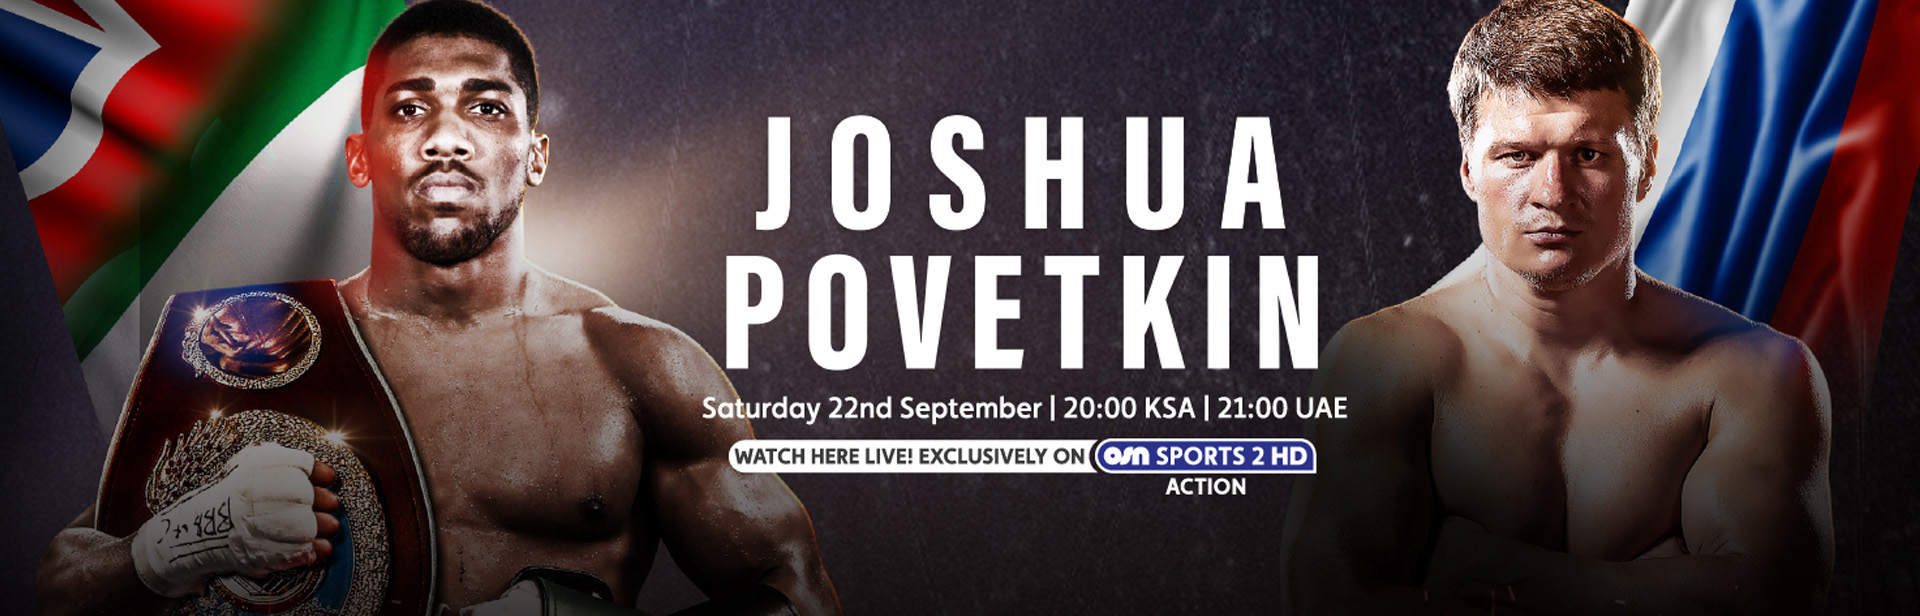 Joshua vs Povetkin: World heavyweight title fight on OSN